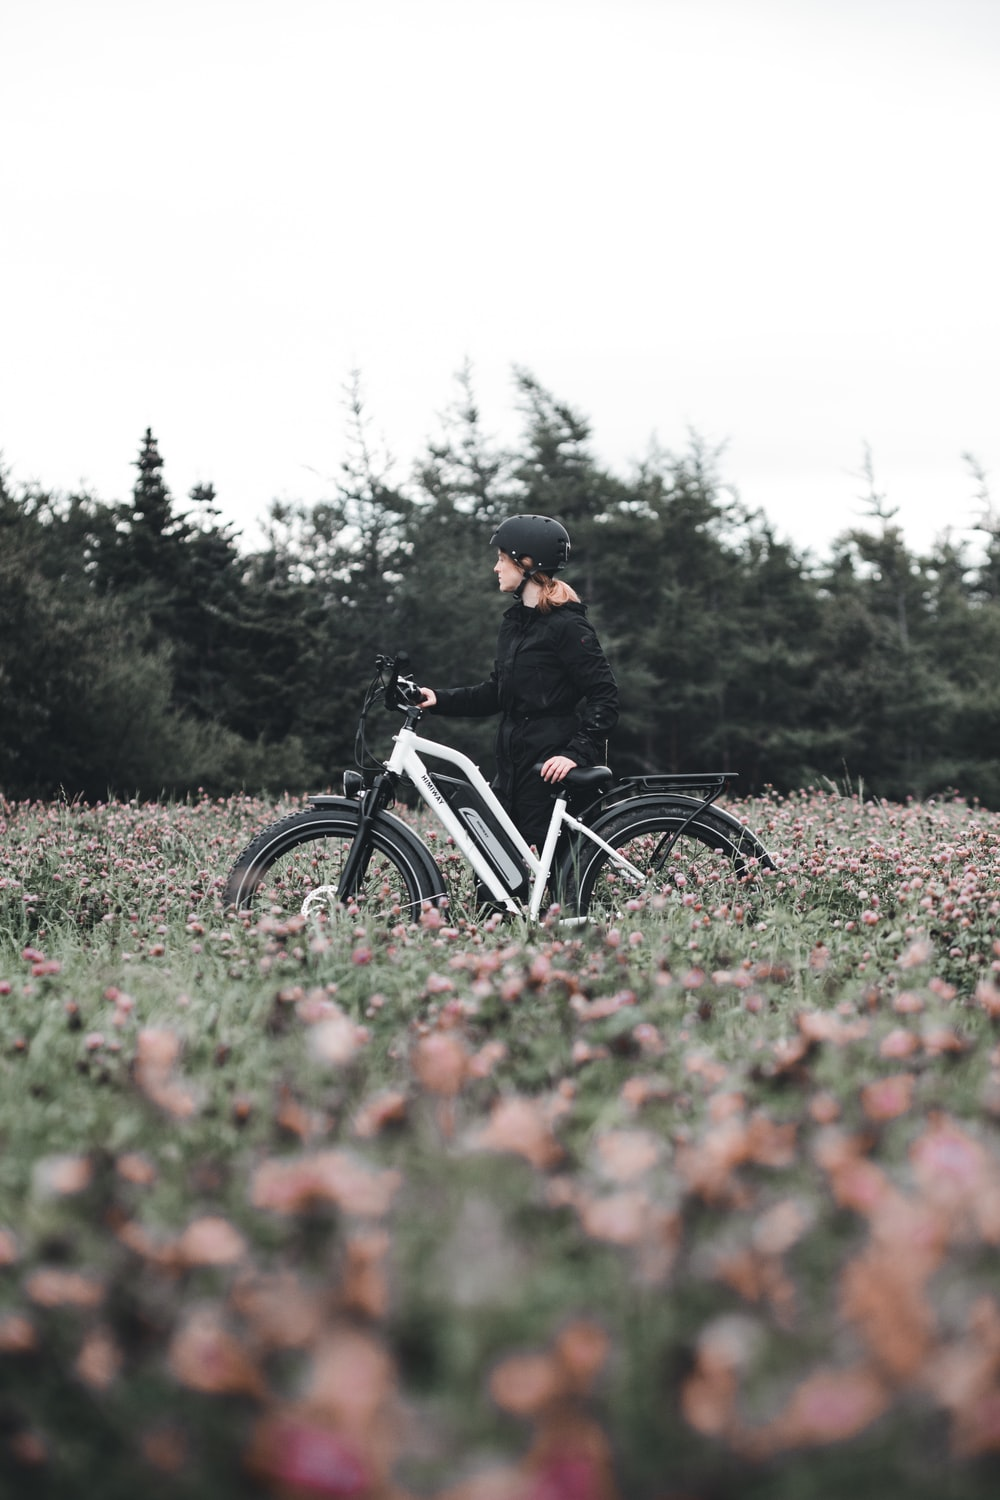 man in black jacket riding on bicycle on green grass field during daytime